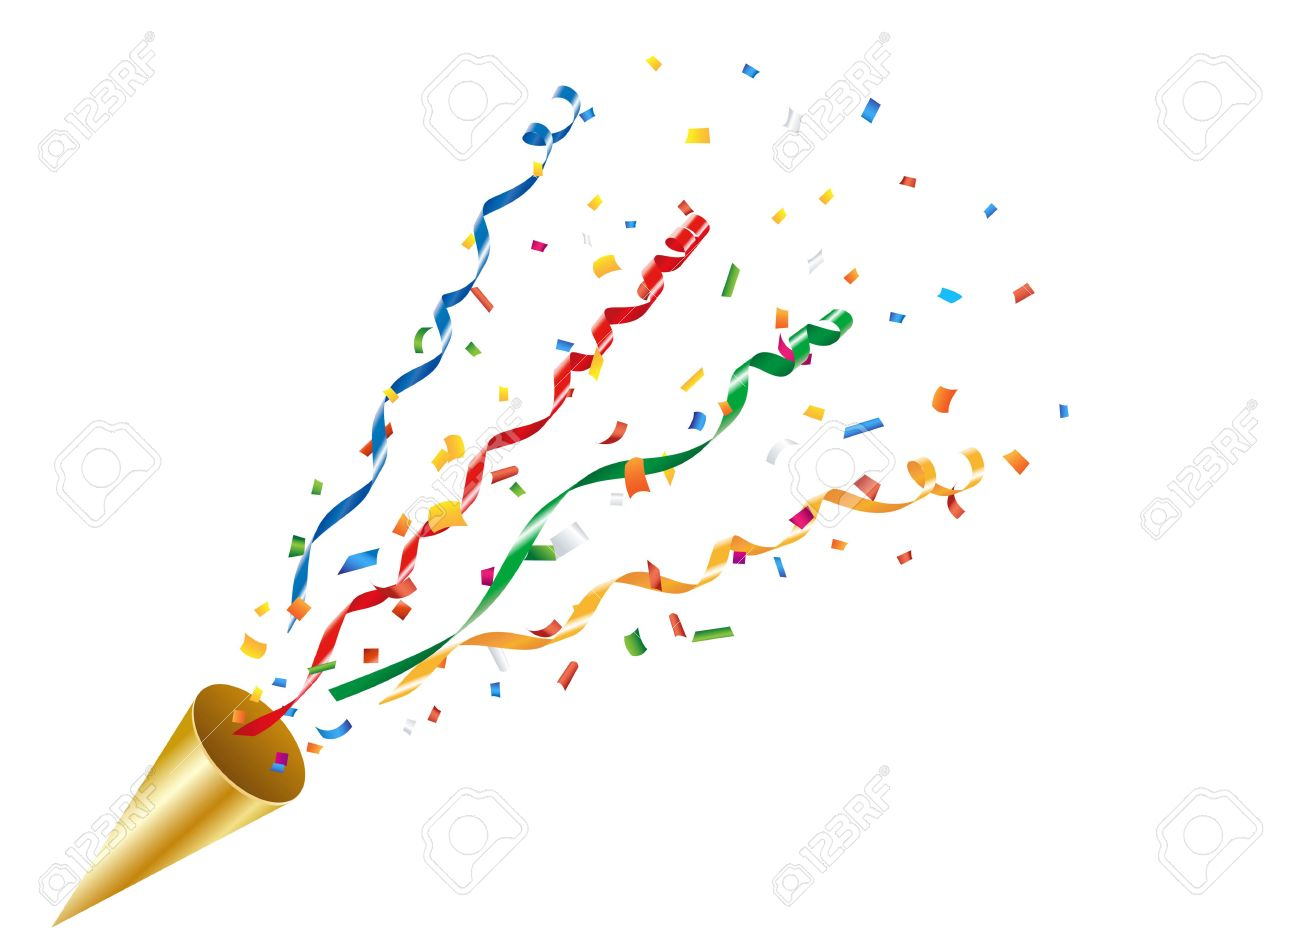 Exploding party popper with confetti and streamer - 55657196